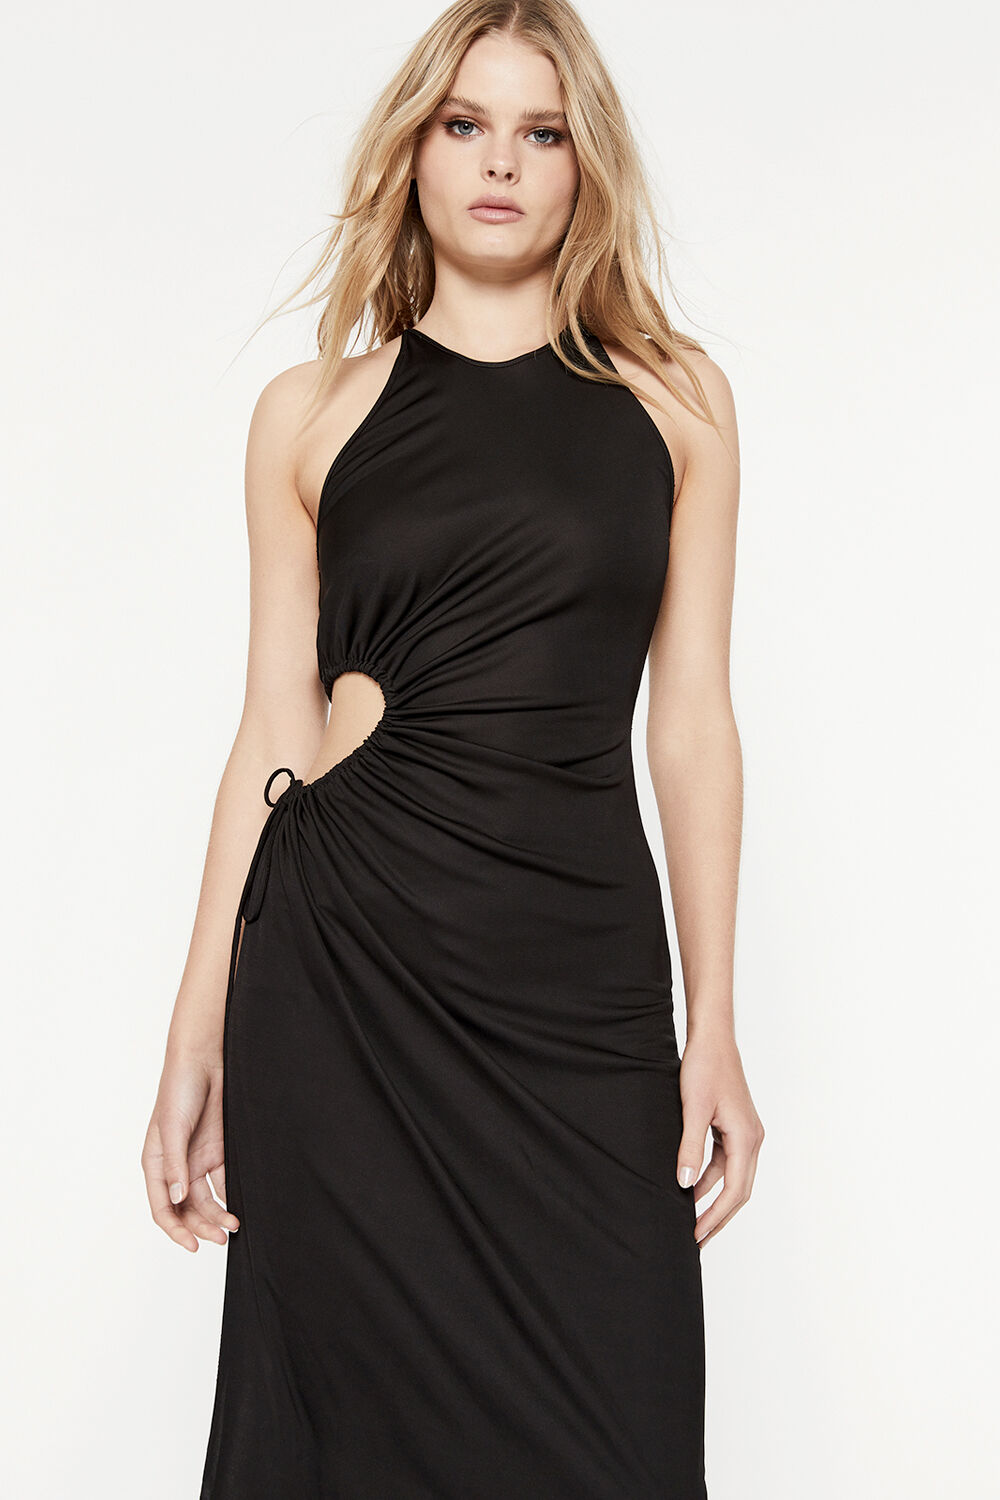 MIMOSA CUT OUT DRESS in colour CAVIAR